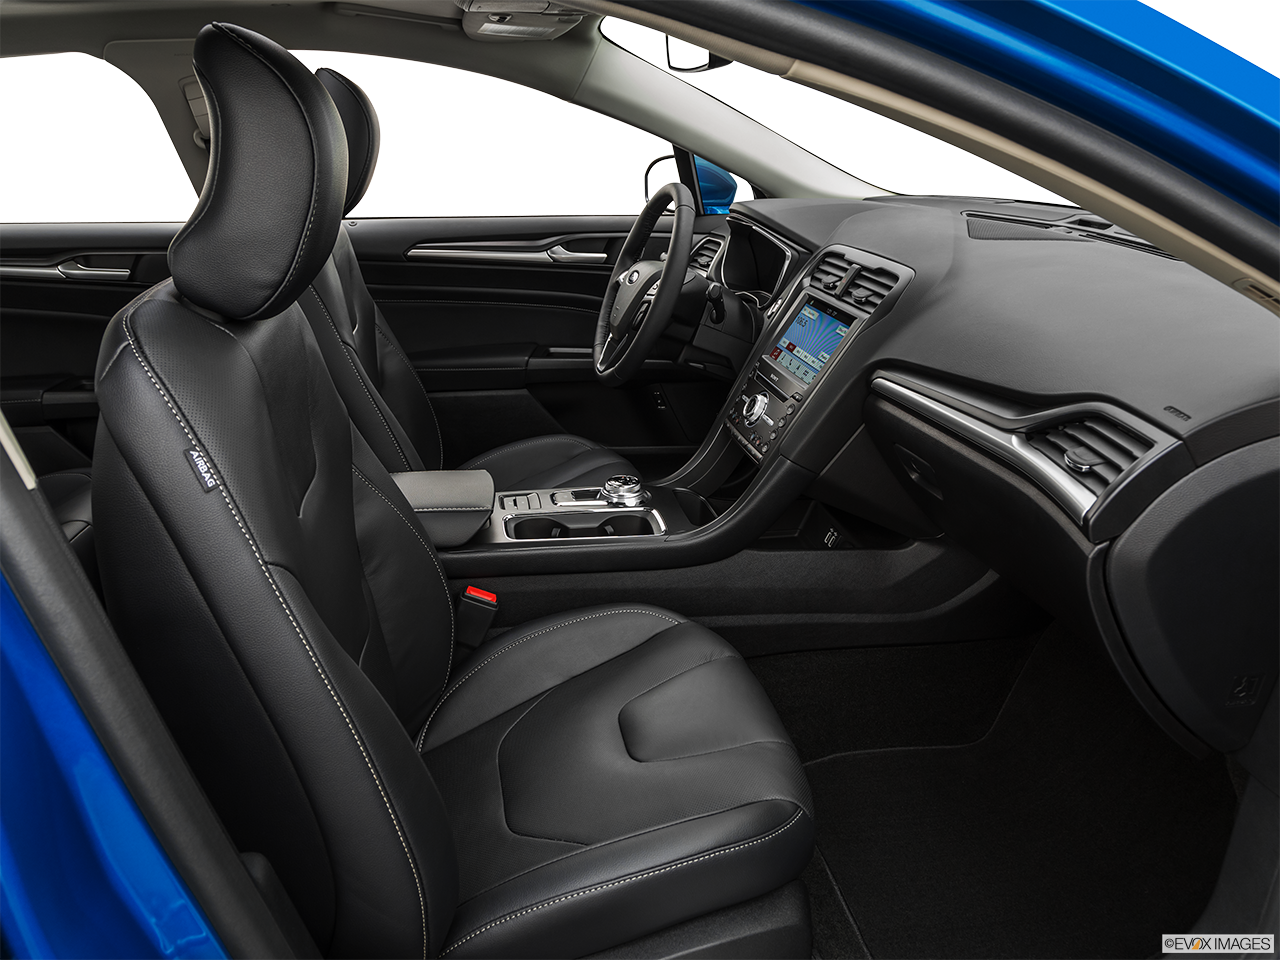 Interior view of the Ford Fusion Energi